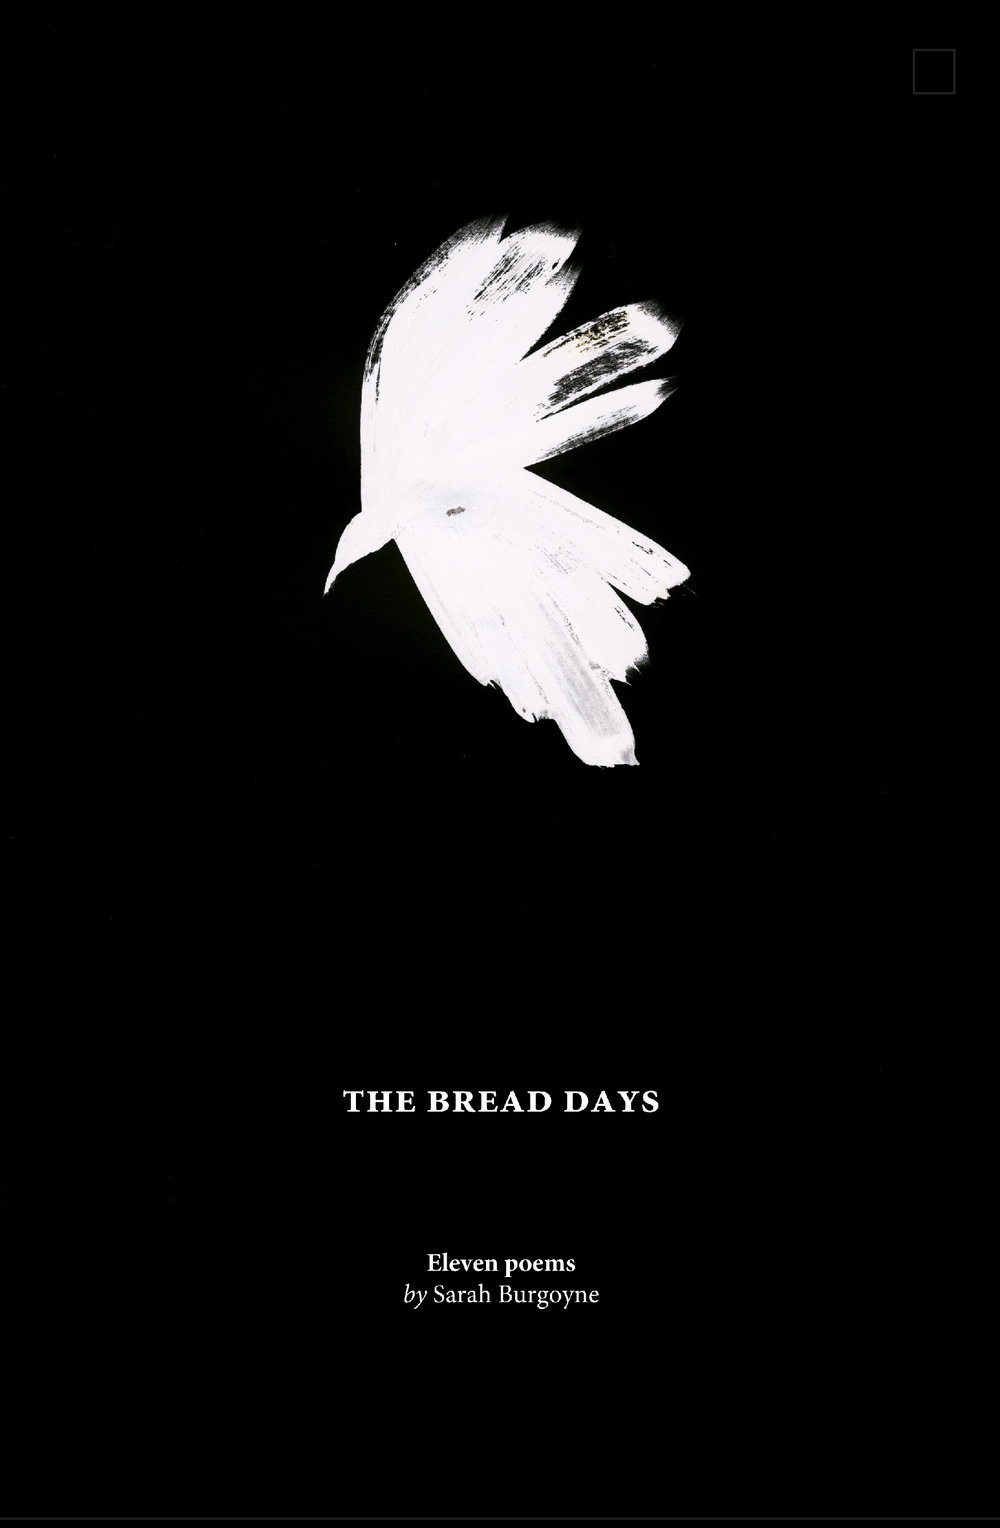 The Bread Days